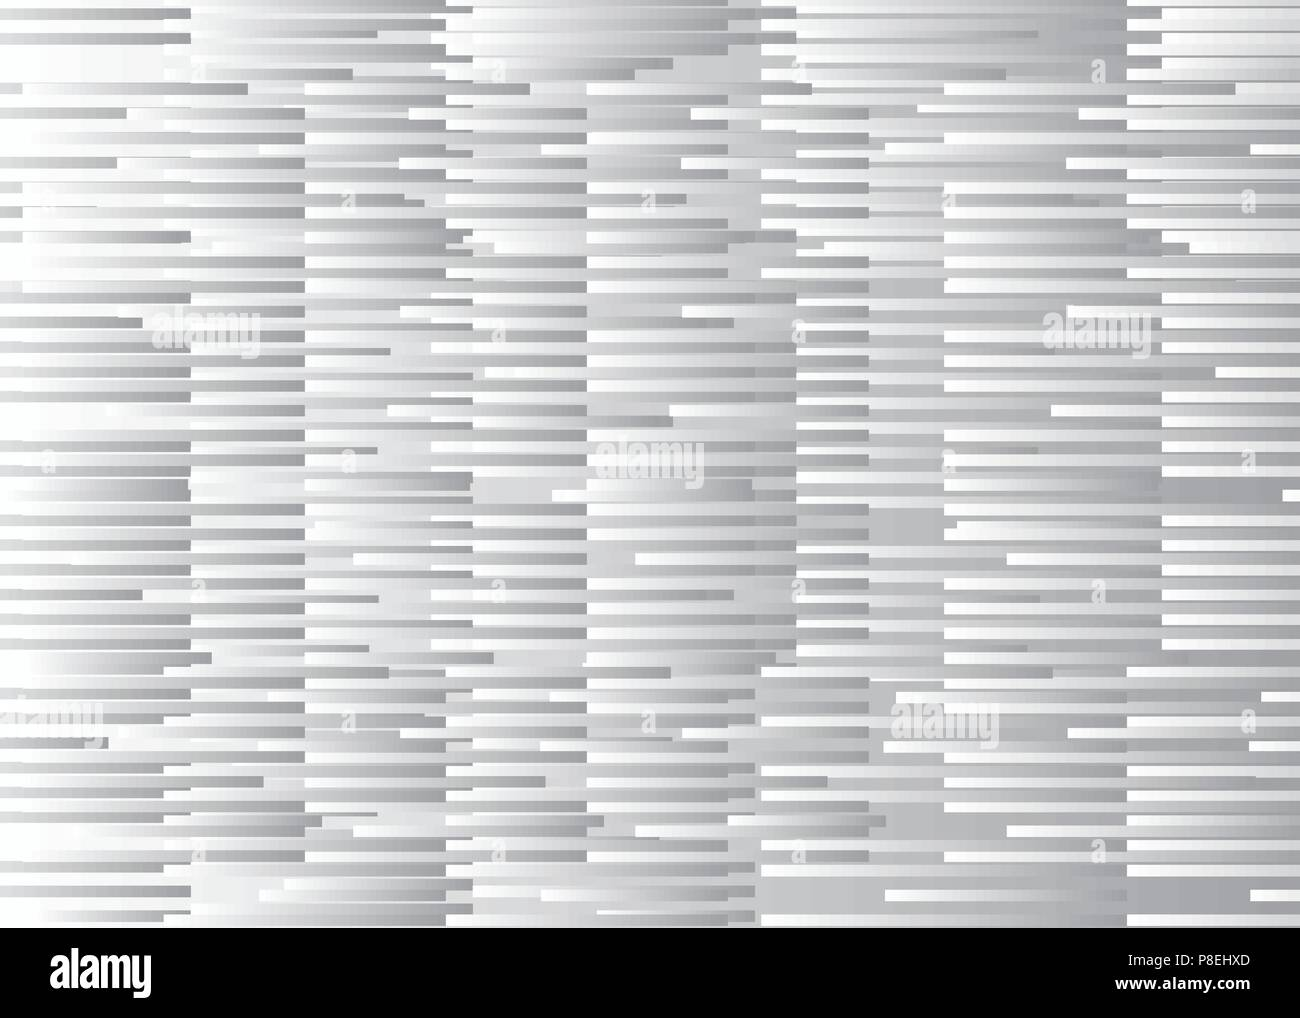 White Glitch Background Stock Vector Image Art Alamy